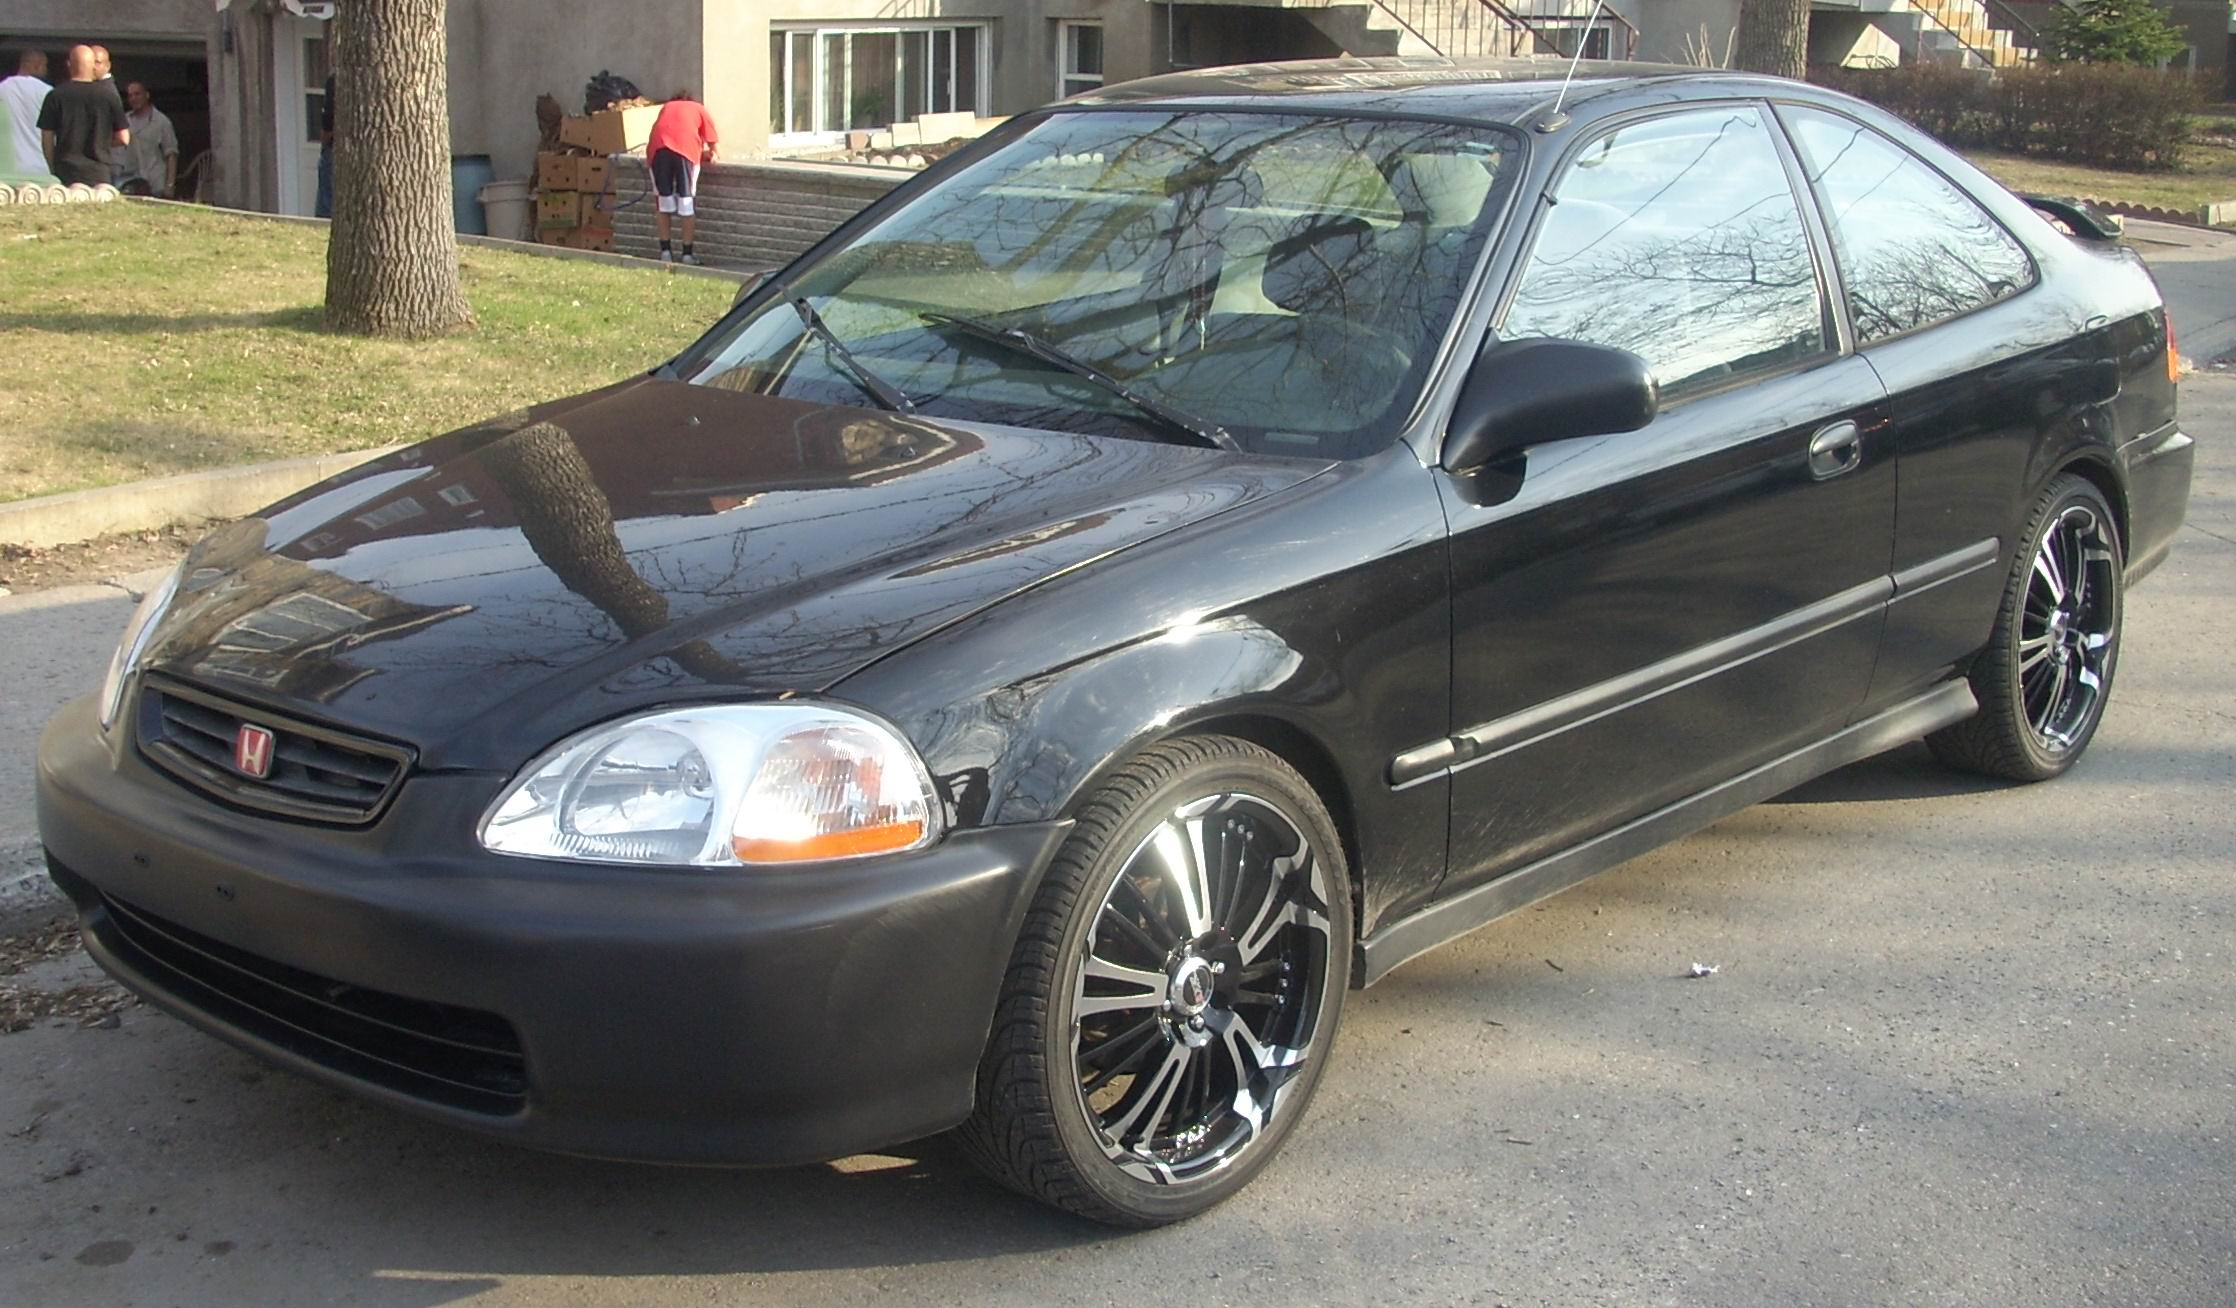 File:1996 98 Honda Civic Coupe.JPG